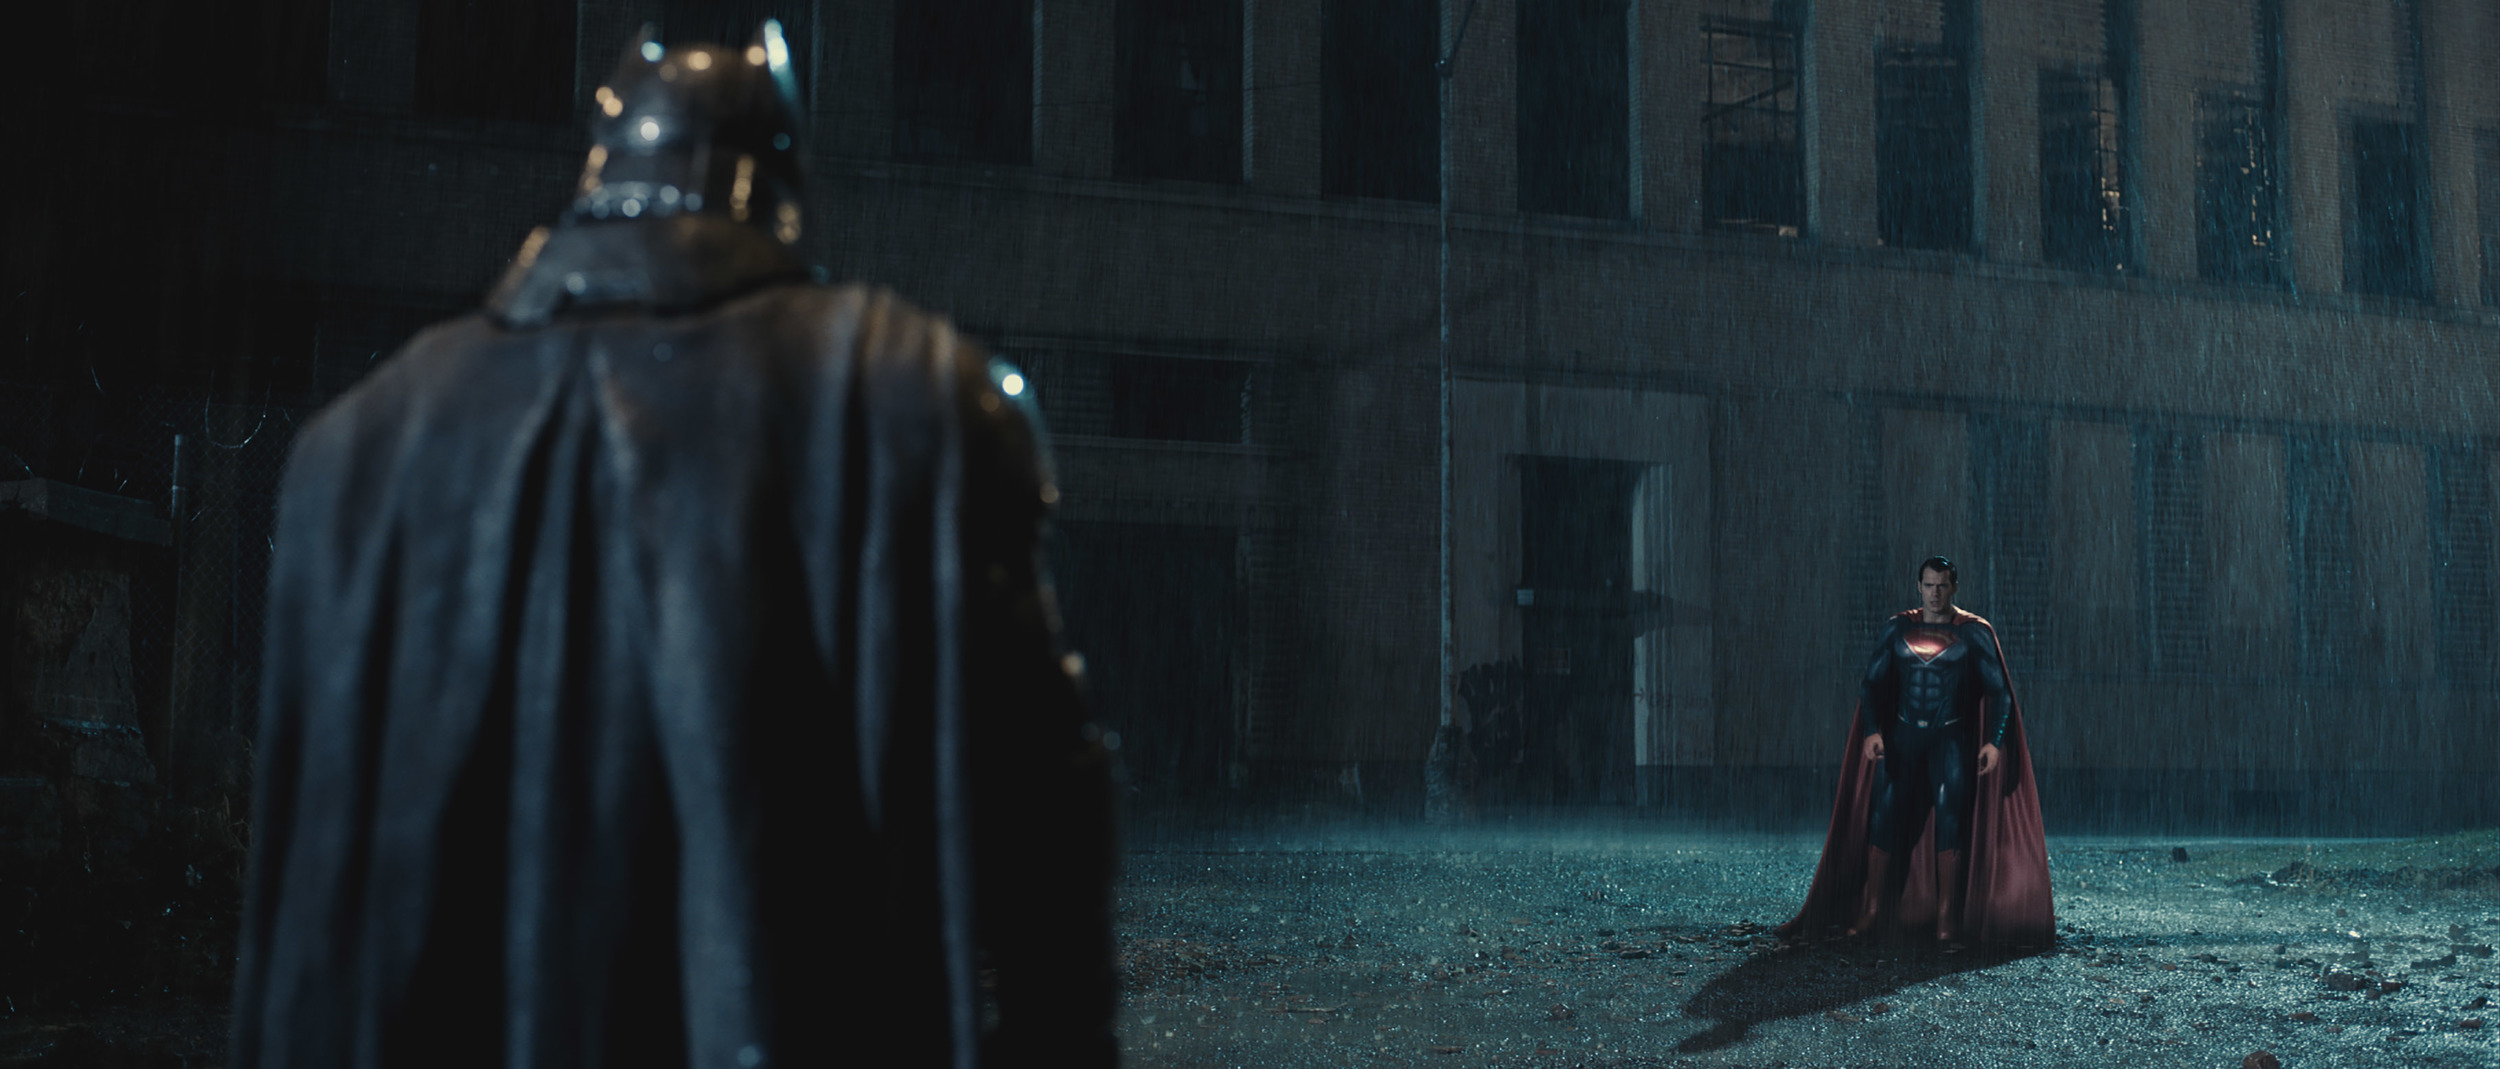 batman-v-superman-dawn-of-justice-image.jpg